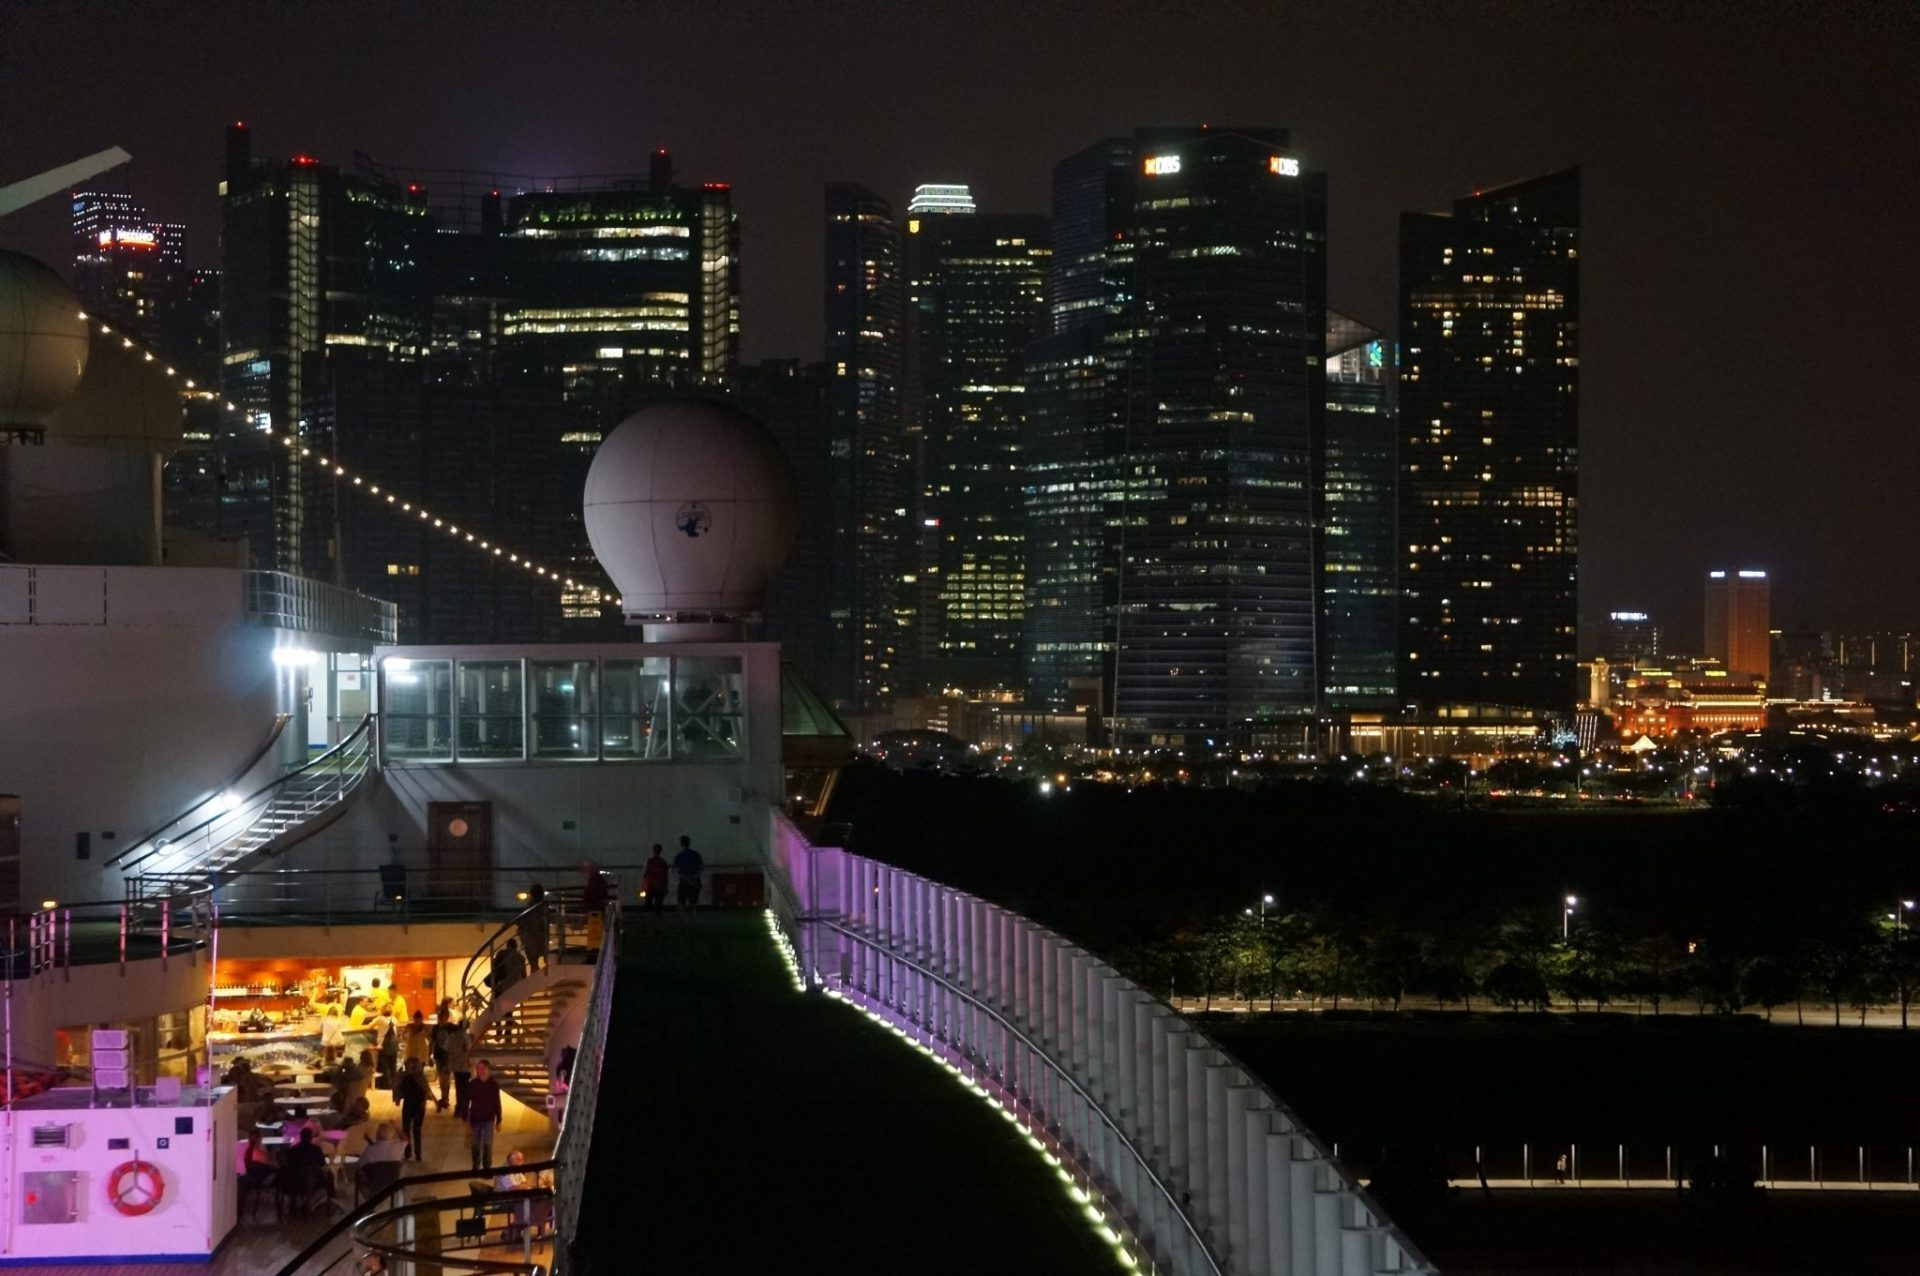 Cruise docked overnight in Singapore